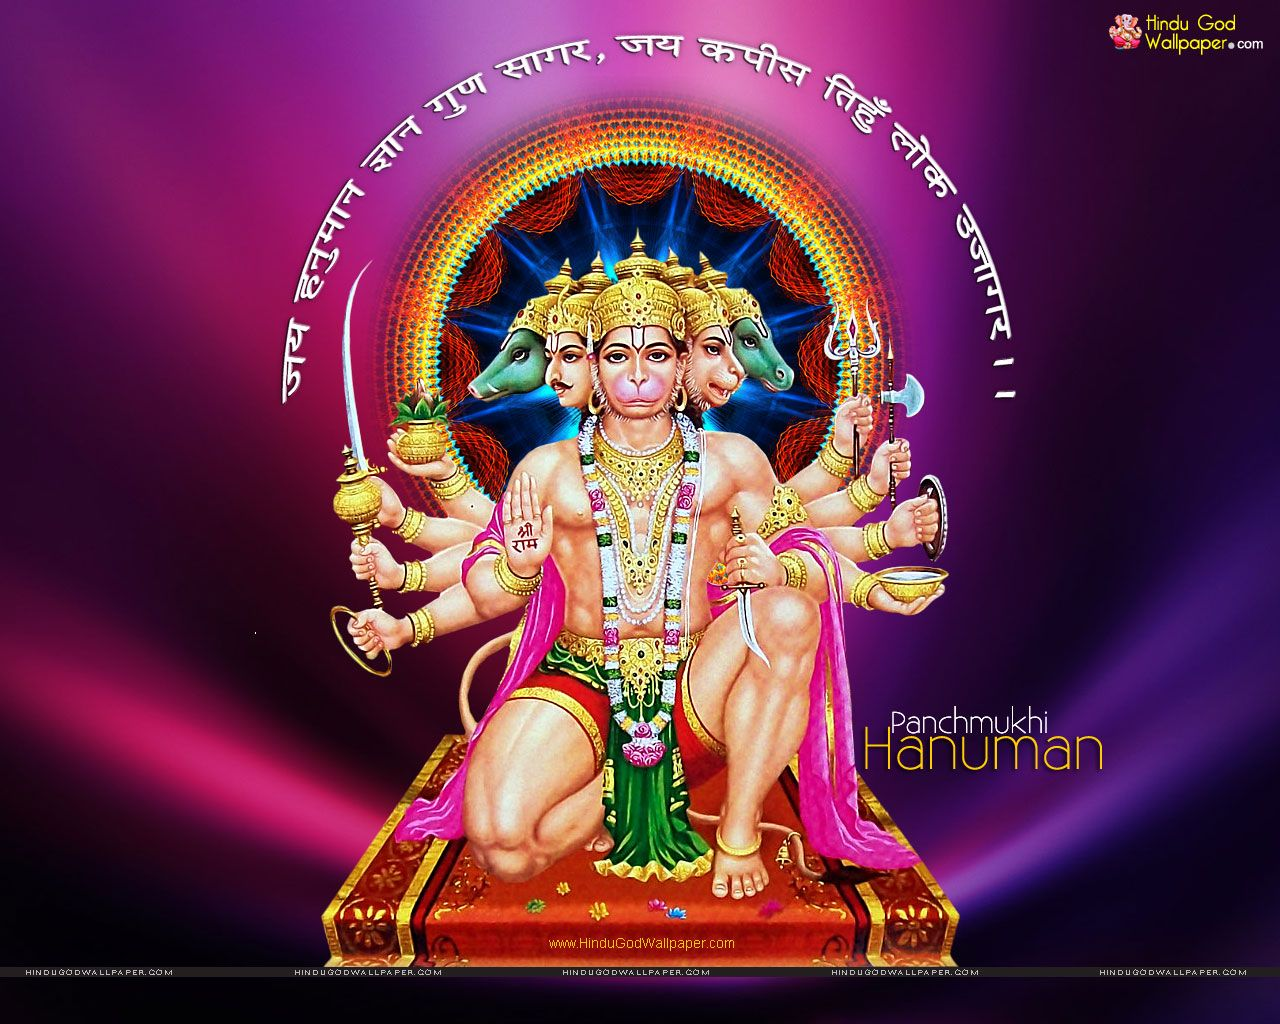 Like And Share Our Page For Getting The Blessings Of Lord Hanuman Hanuman Hinduism Hanuman Photos Hanuman Hd Wallpaper Hanuman Wallpaper